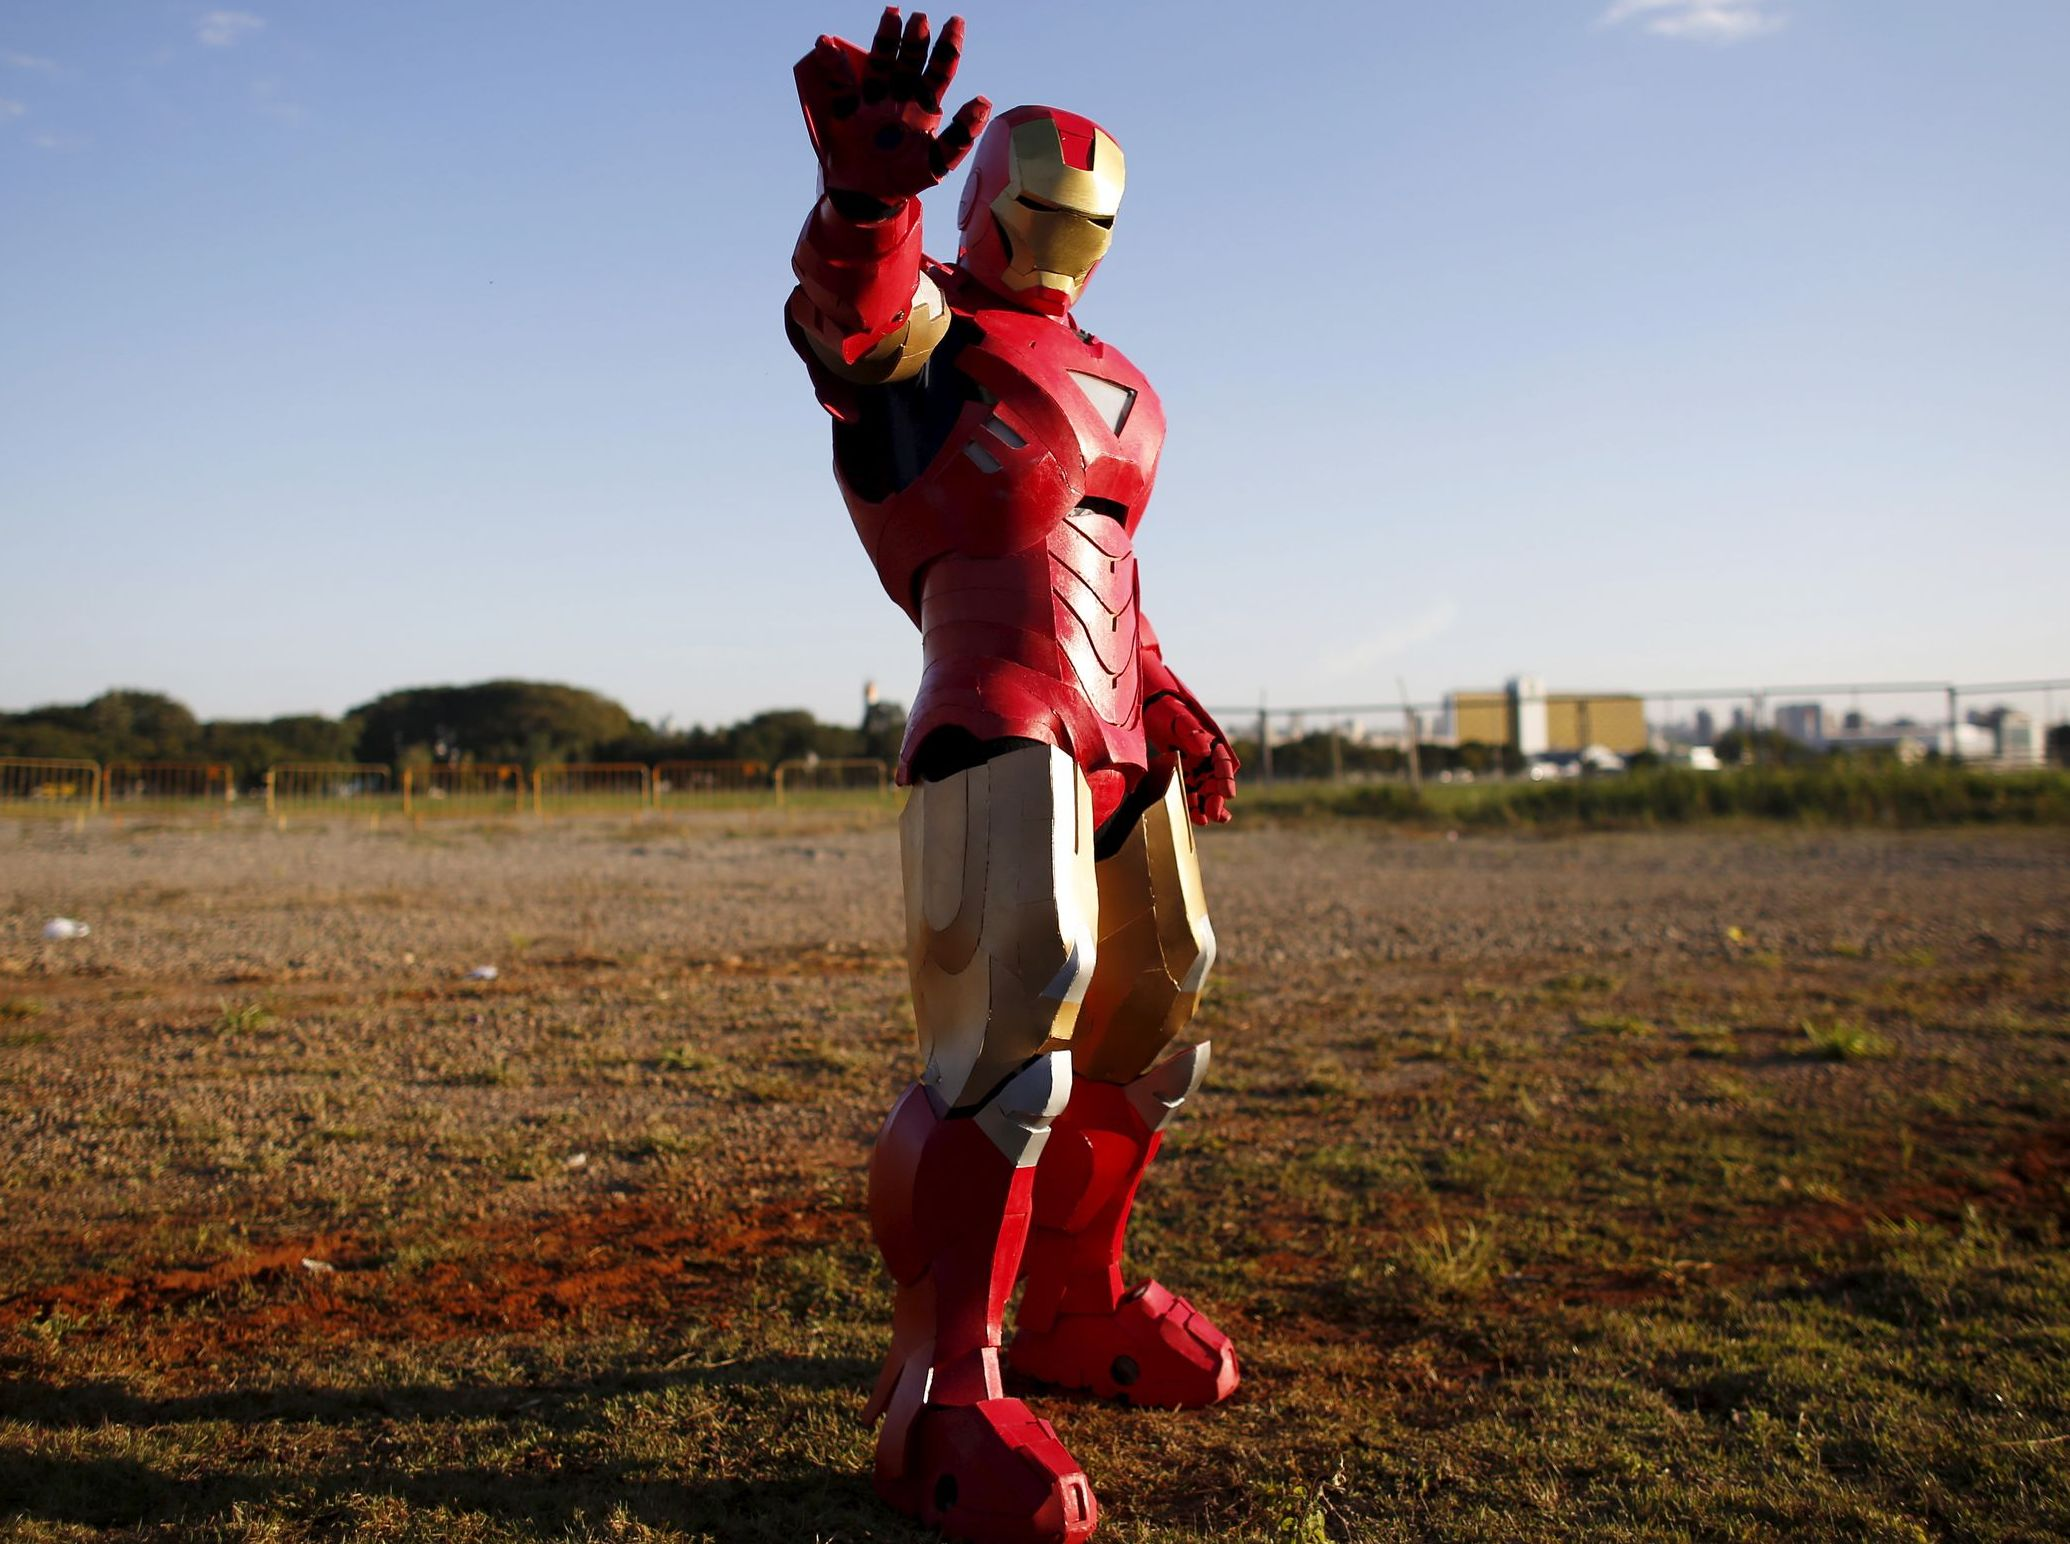 The U.S. Military's Iron Man Suit Is Dead